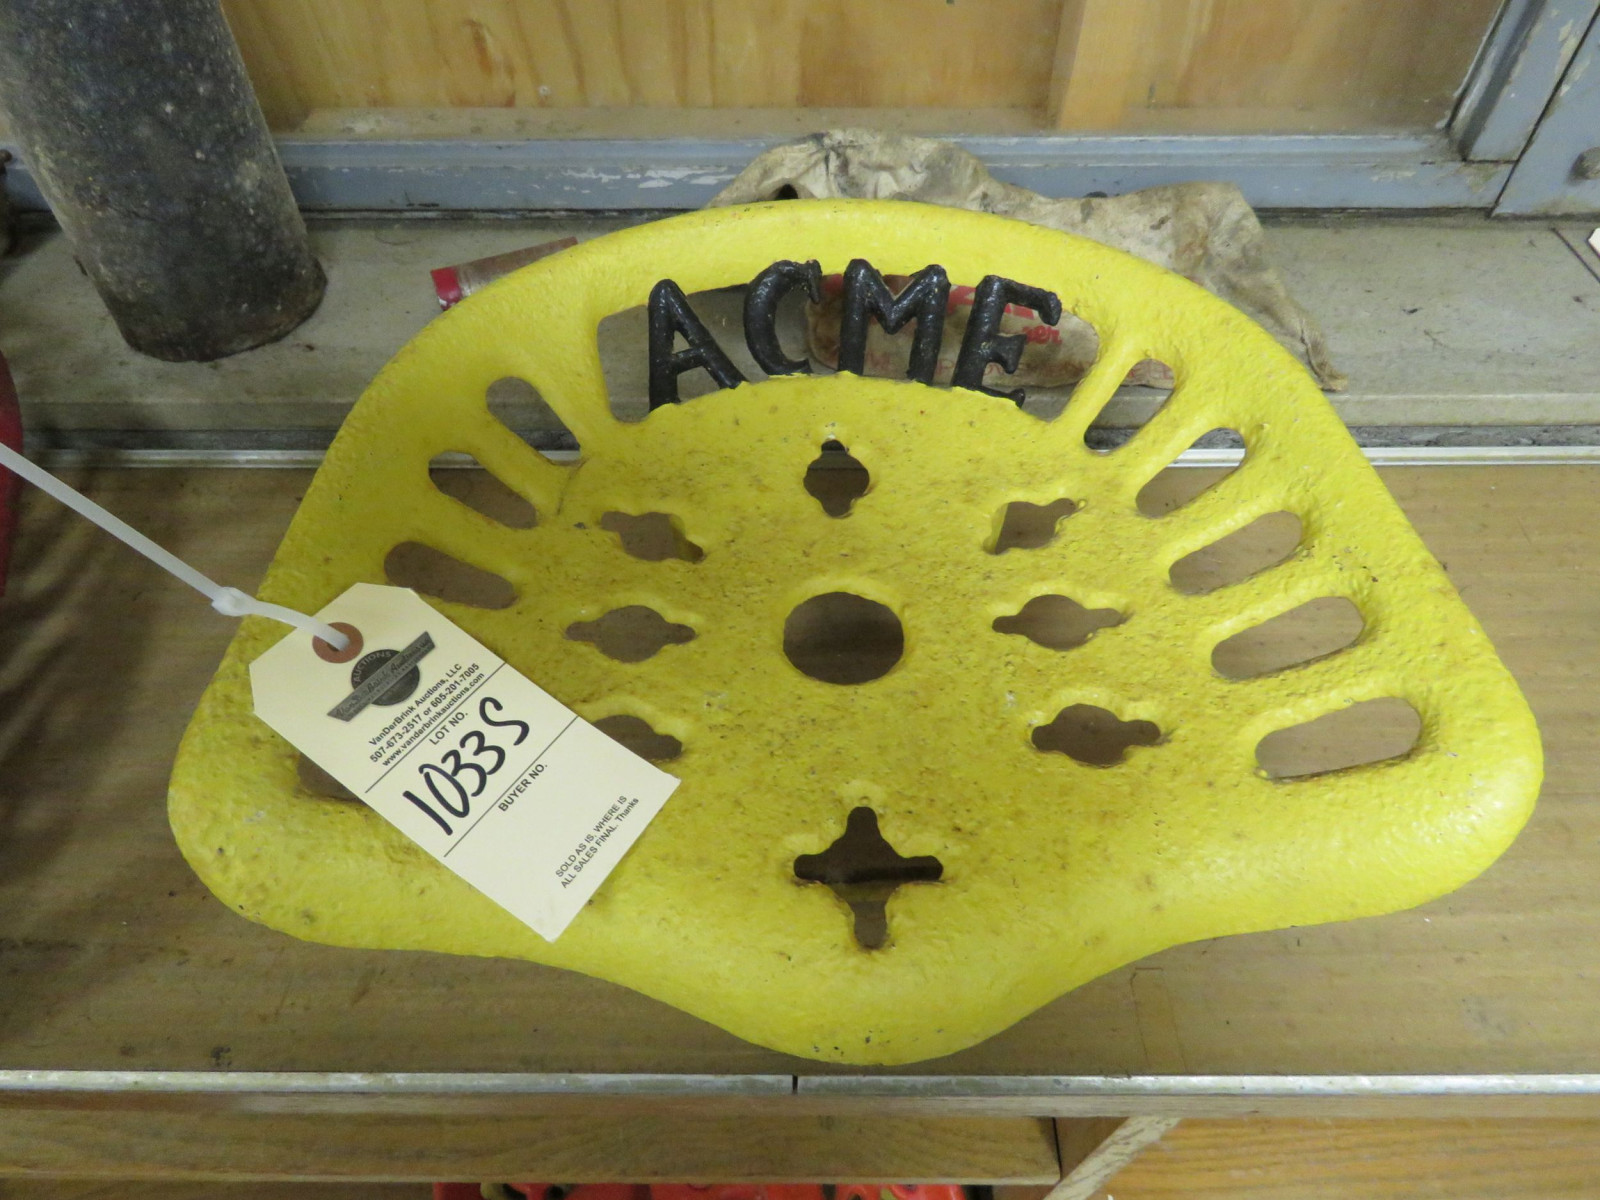 Restored Acme Cast Iron Implement Seat - Image 1